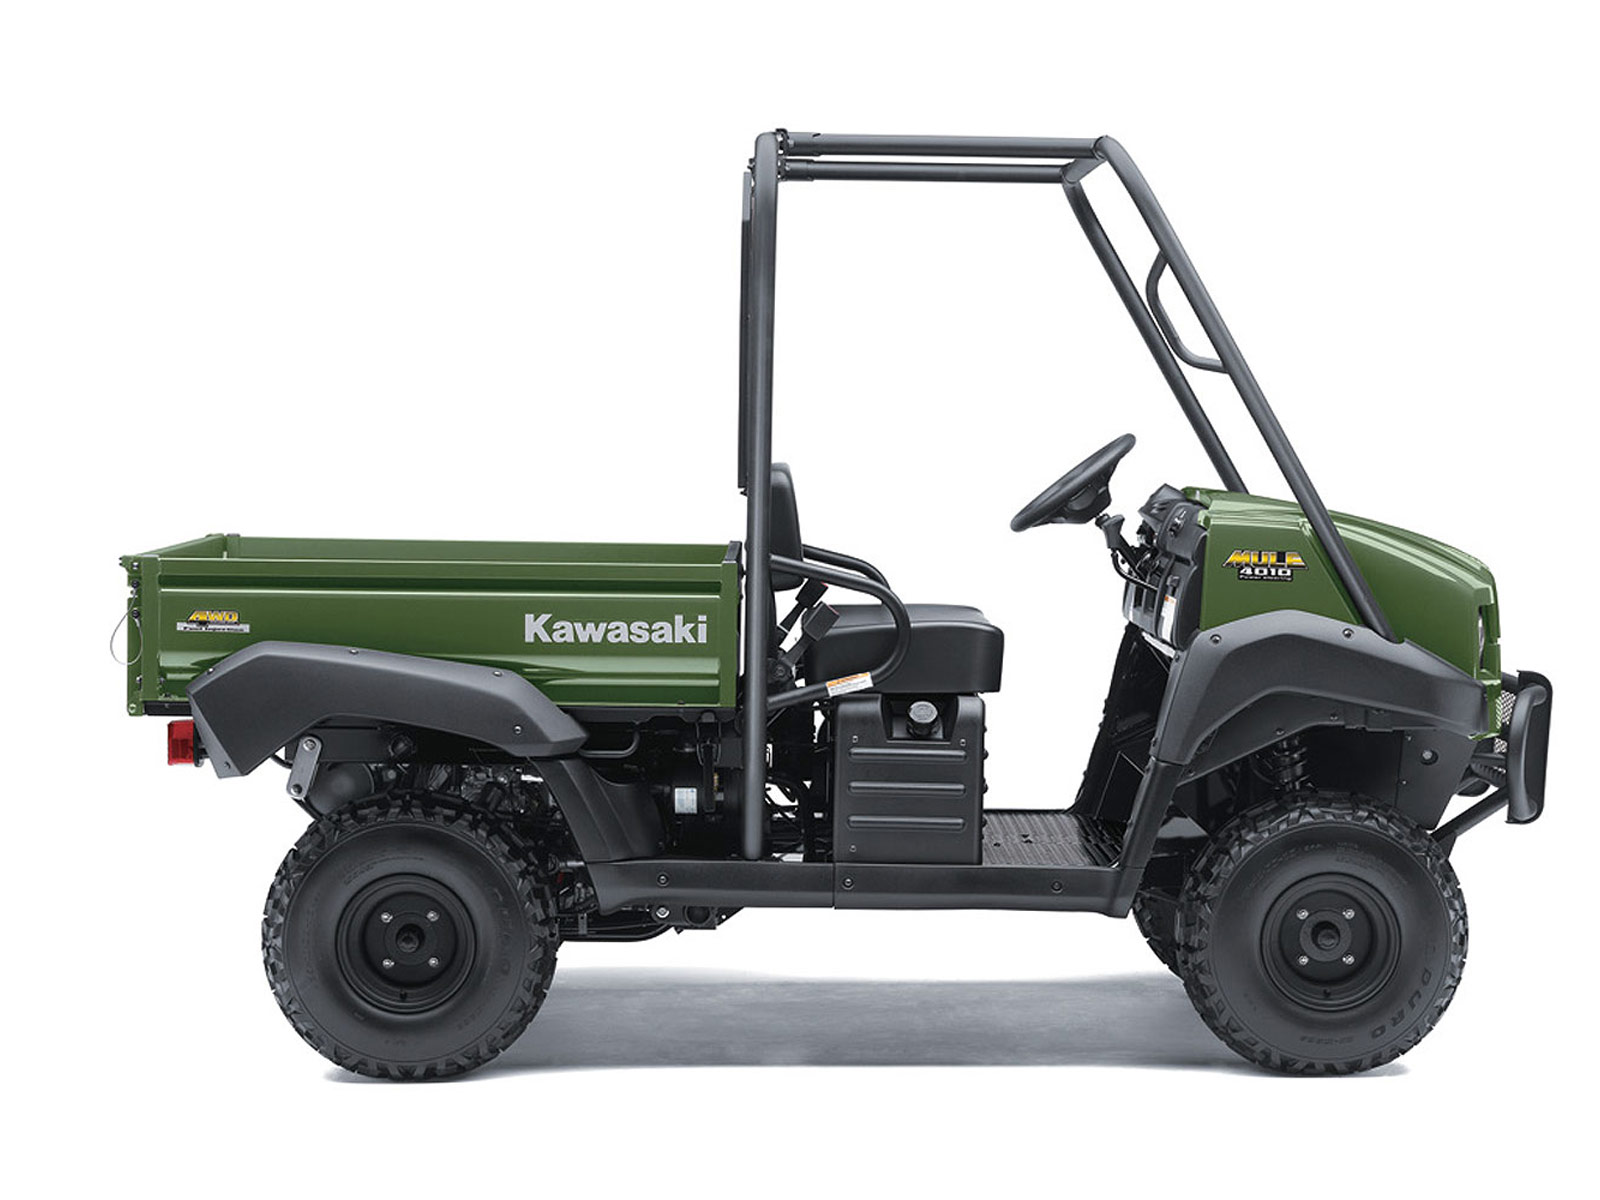 atv pictures 2013 kawasaki mule 4010 4x4 specifications. Black Bedroom Furniture Sets. Home Design Ideas